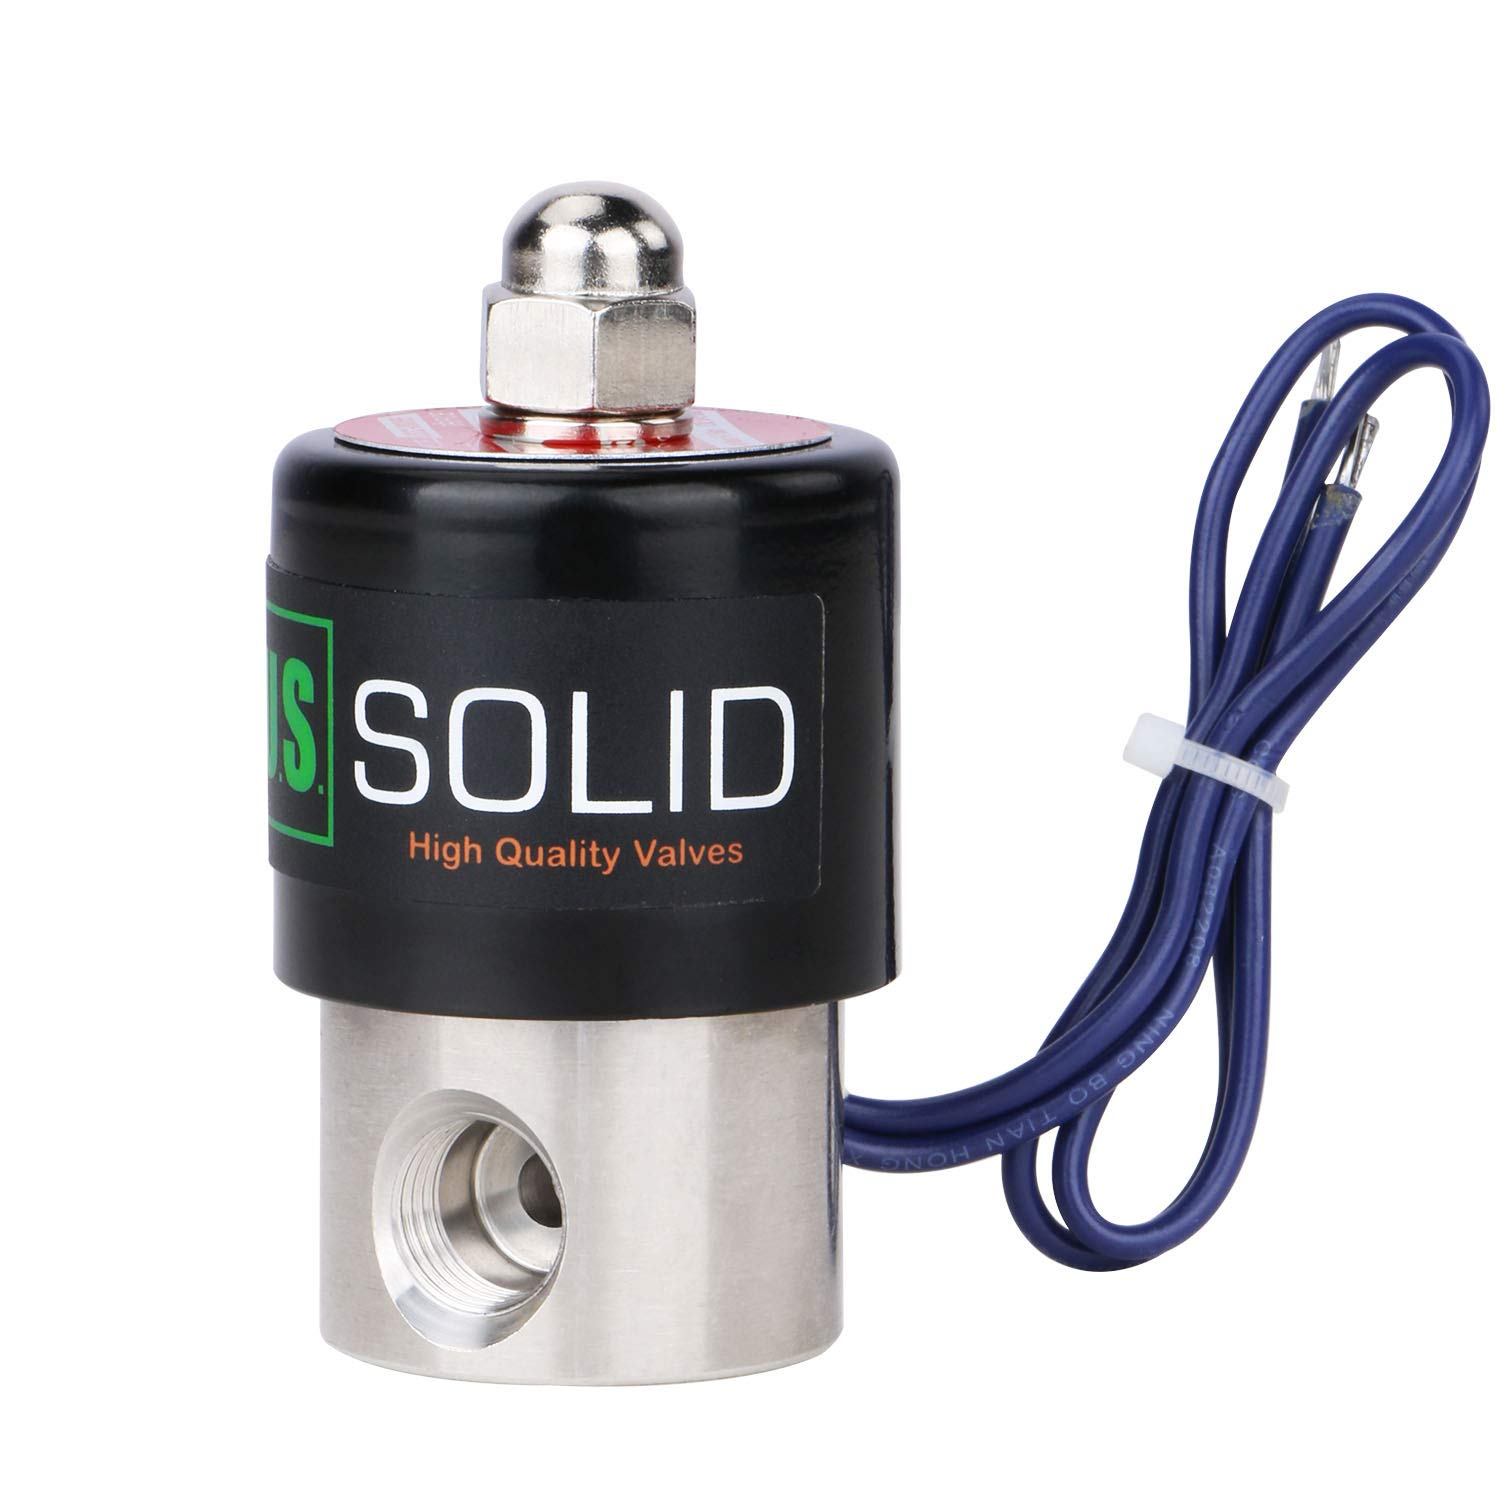 U.S. Solid 1/4'' Stainless Steel Electric Solenoid Valve 12VDC Normally Closed VITON by U.S. Solid